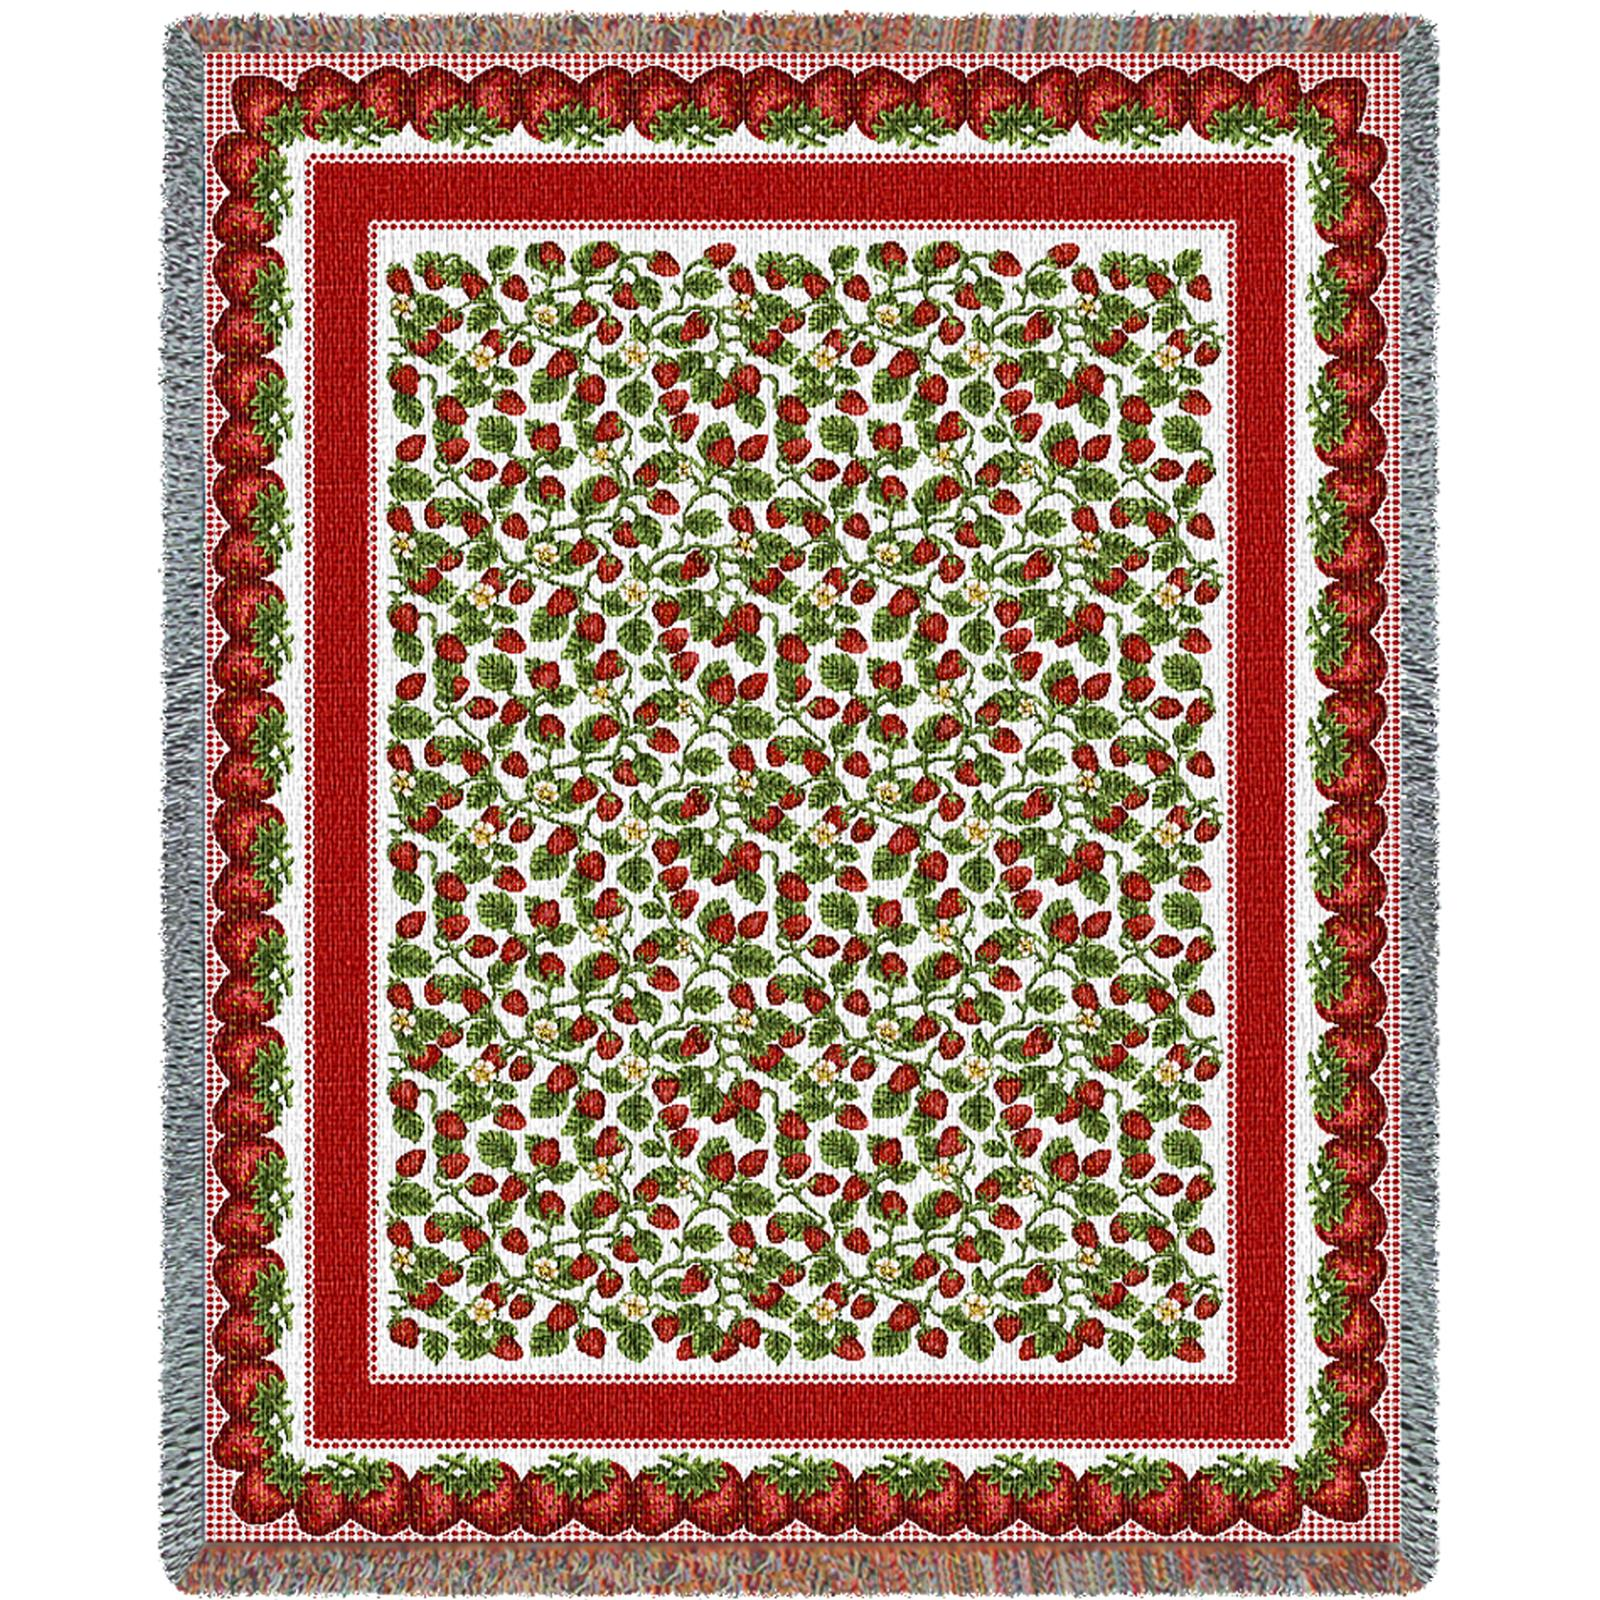 Strawberry Festival (Botanicals) Tapestry Decorative Afghan Throw